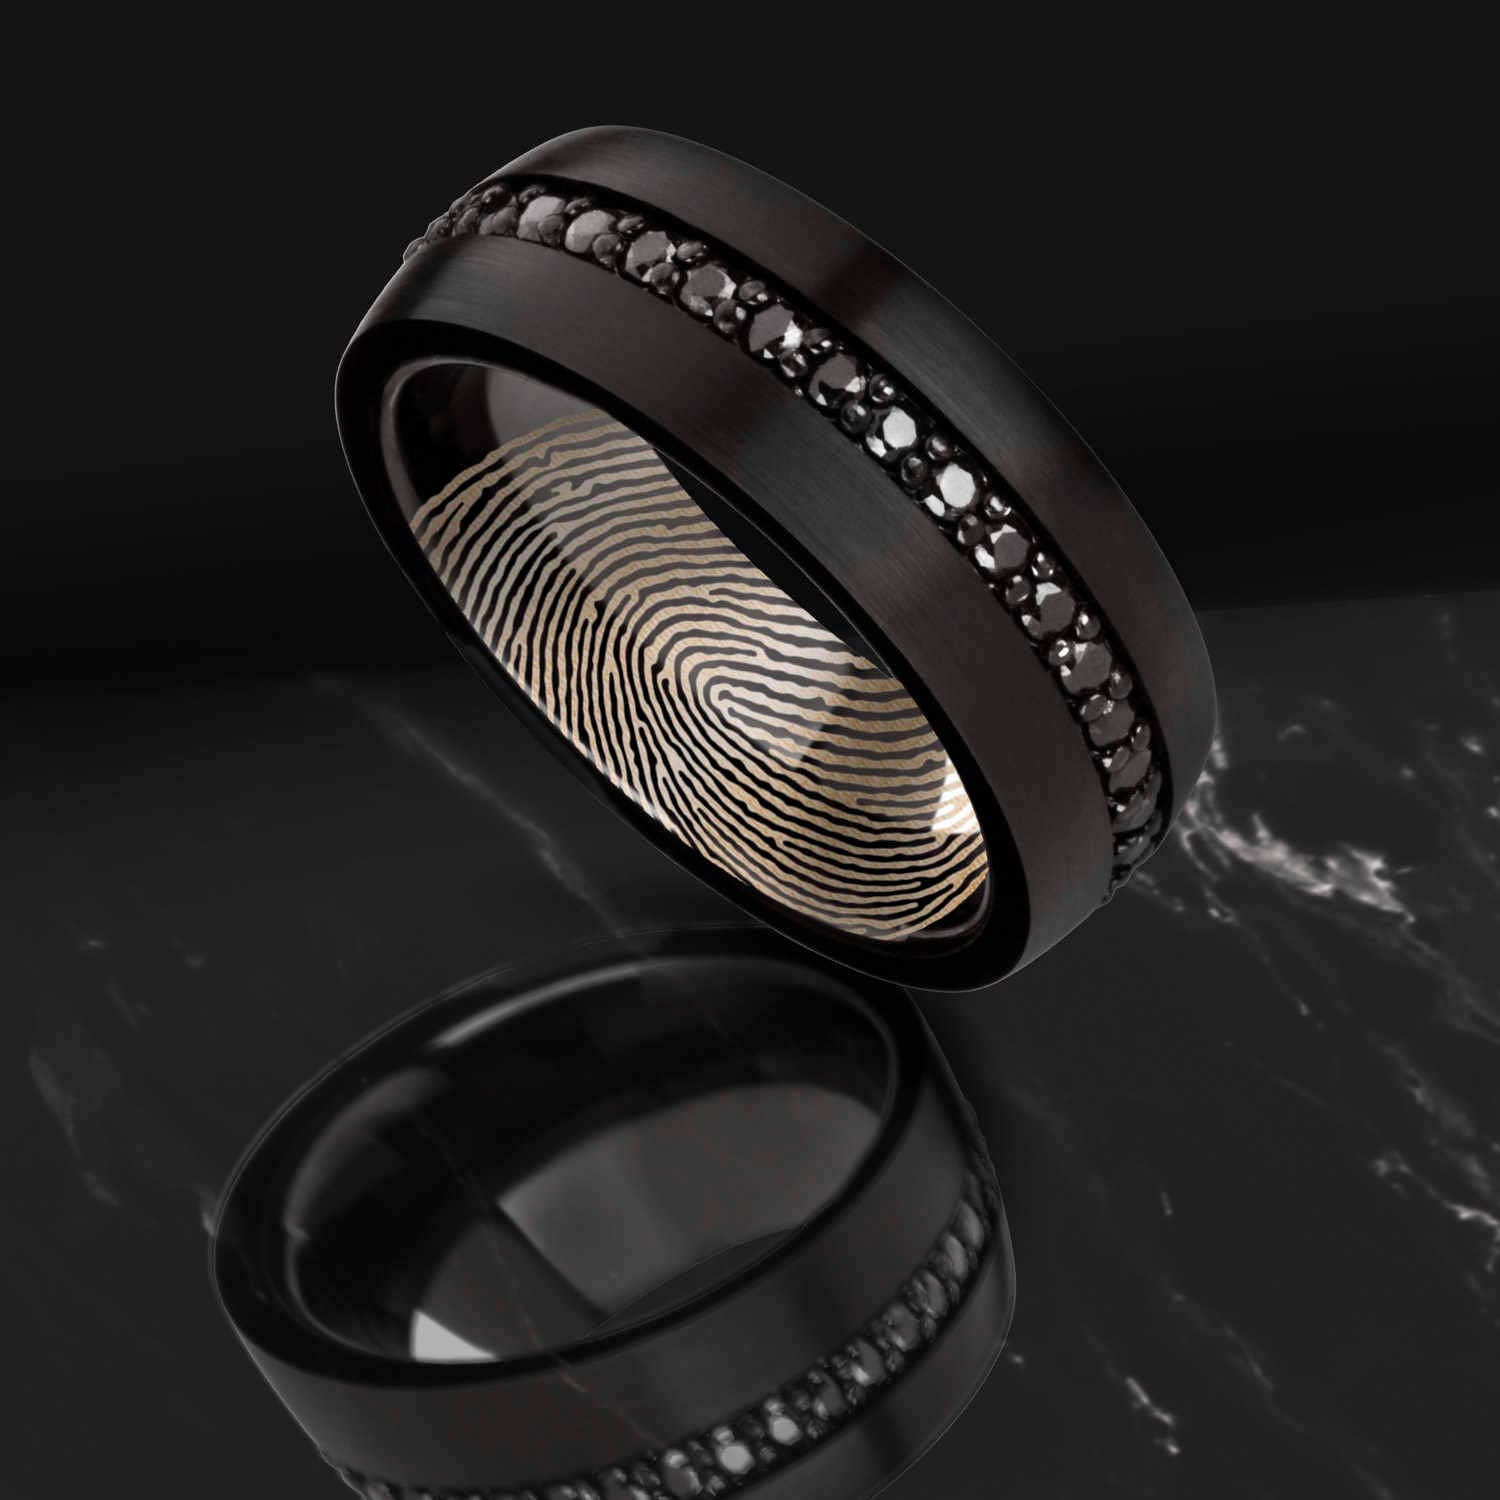 n rings with wedding sch schon individual unique of ring palladium fingerprint engraving